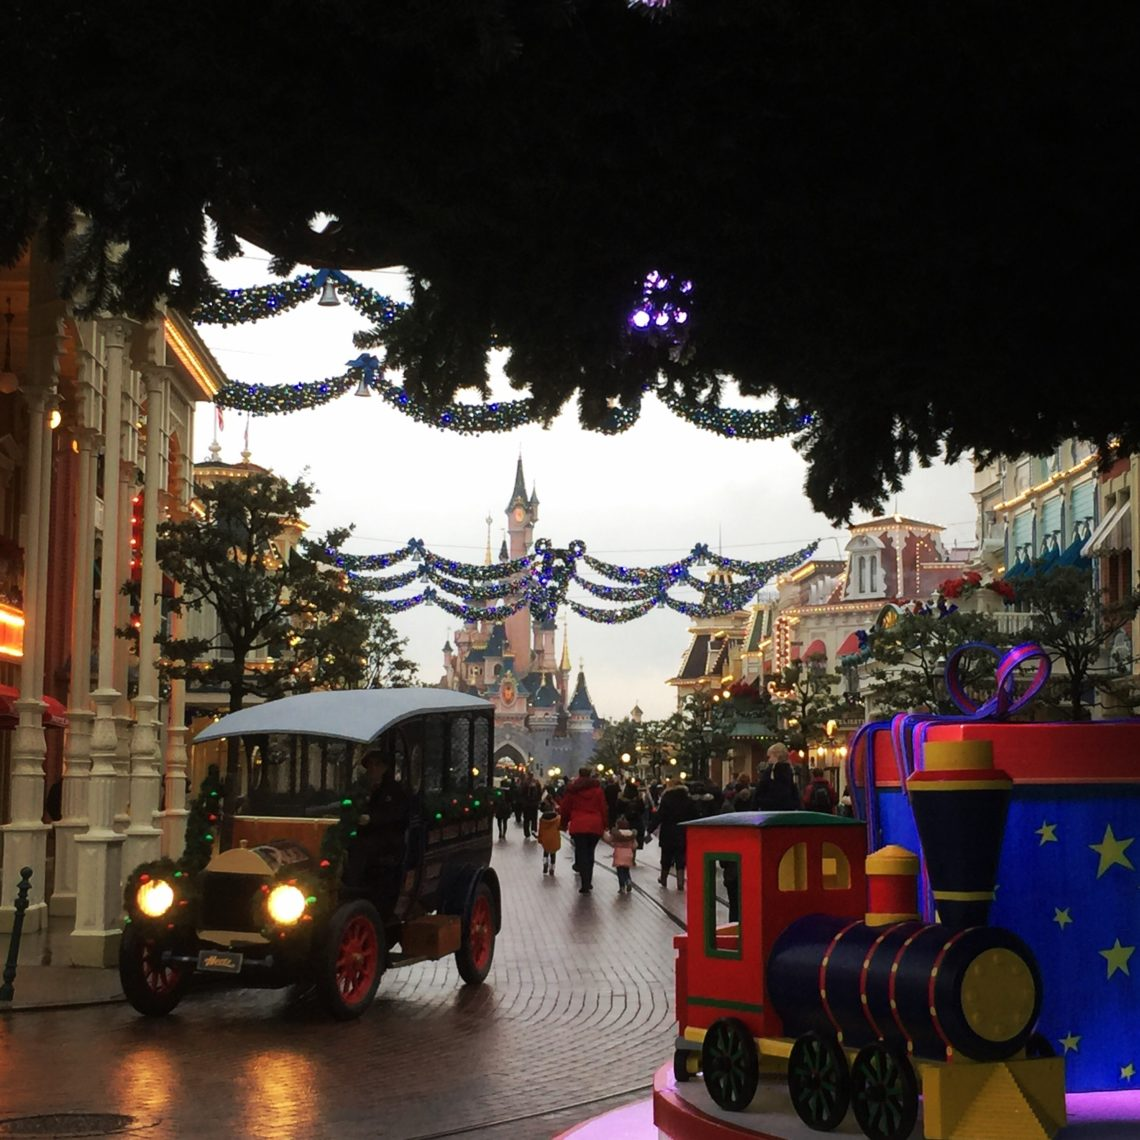 Disneyland Paris Enchanted Christmas